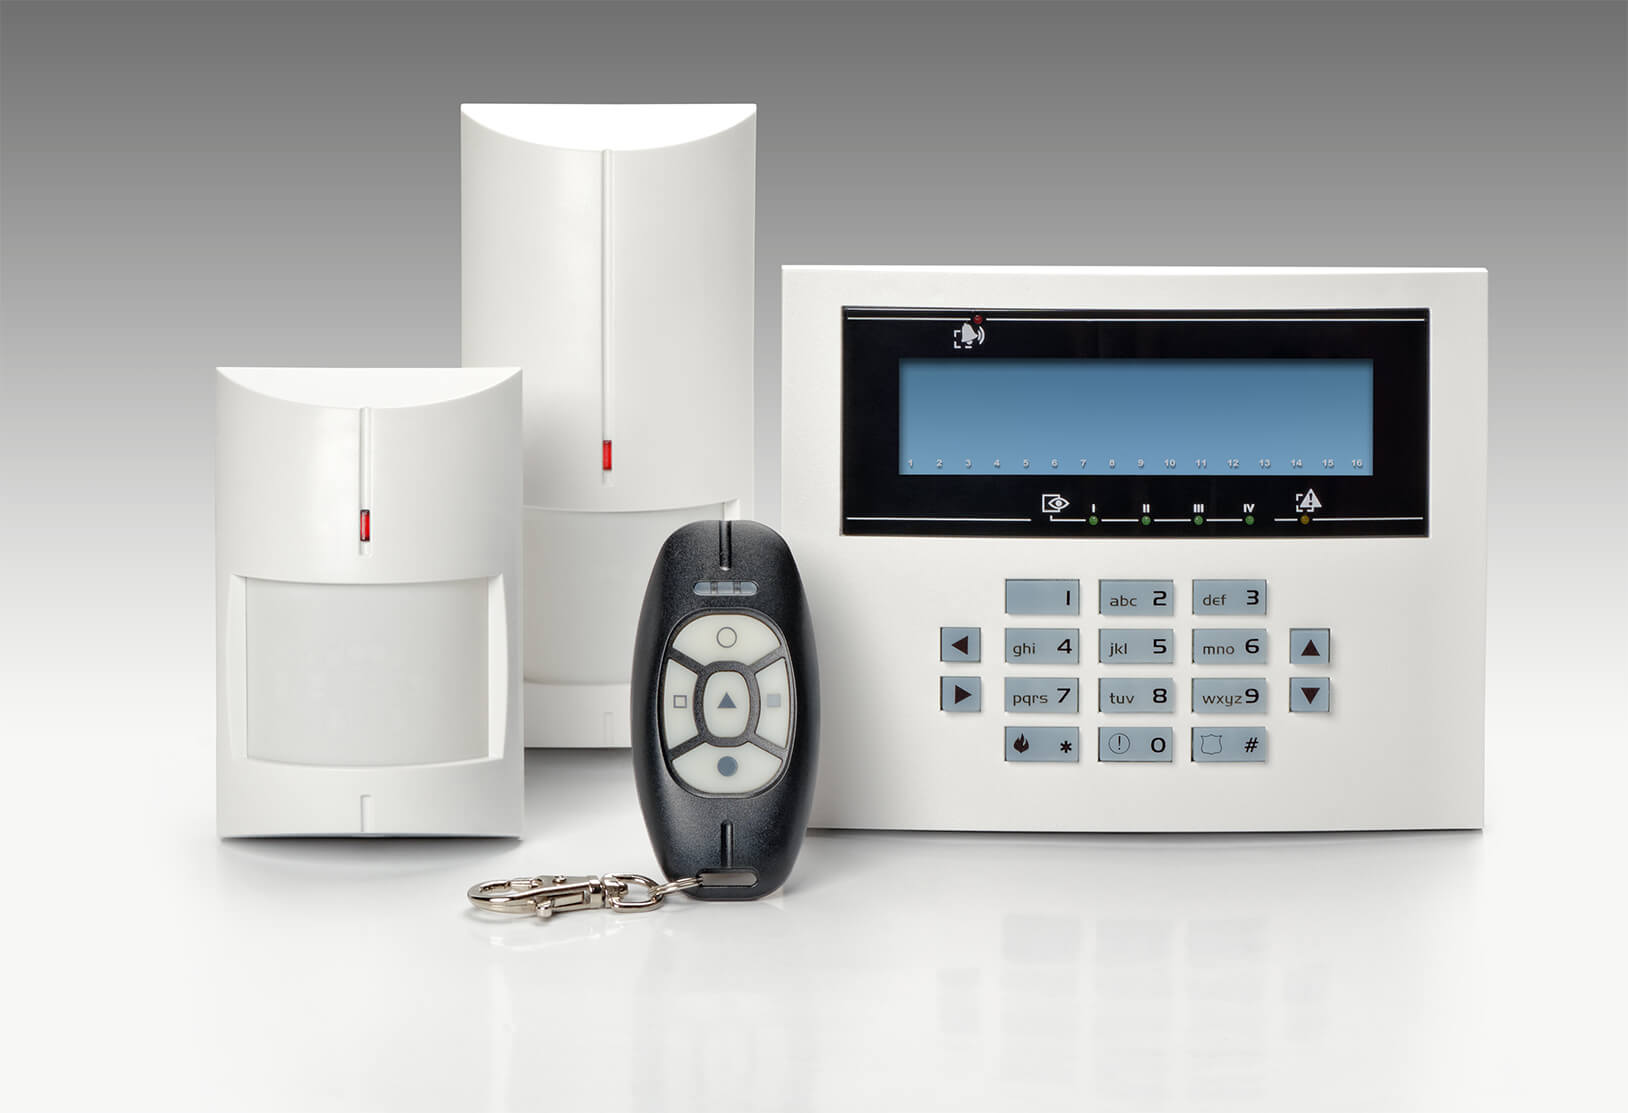 Business & Residential NSI / NACOSS Approved Burglar Alarms In New Southgate N11 - Local New Southgate N11 security company.Call 02078872244 - Dedicated to Safety & Security. Companies, shops and homes ..